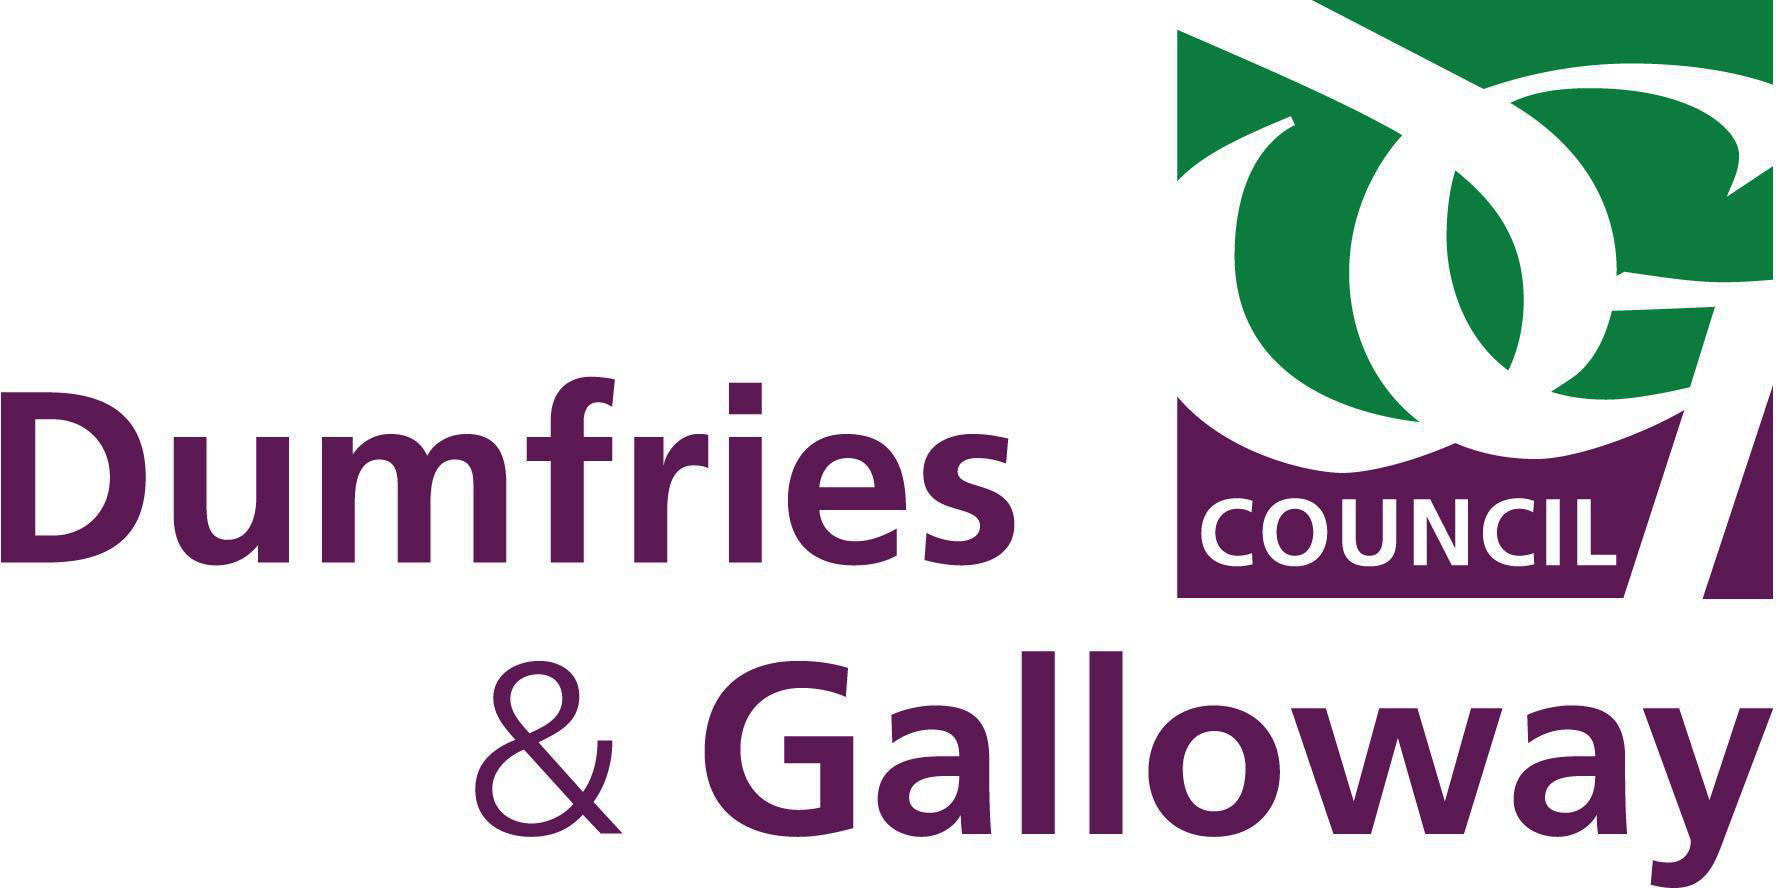 Organisation Logo - Dumfries and Galloway Council